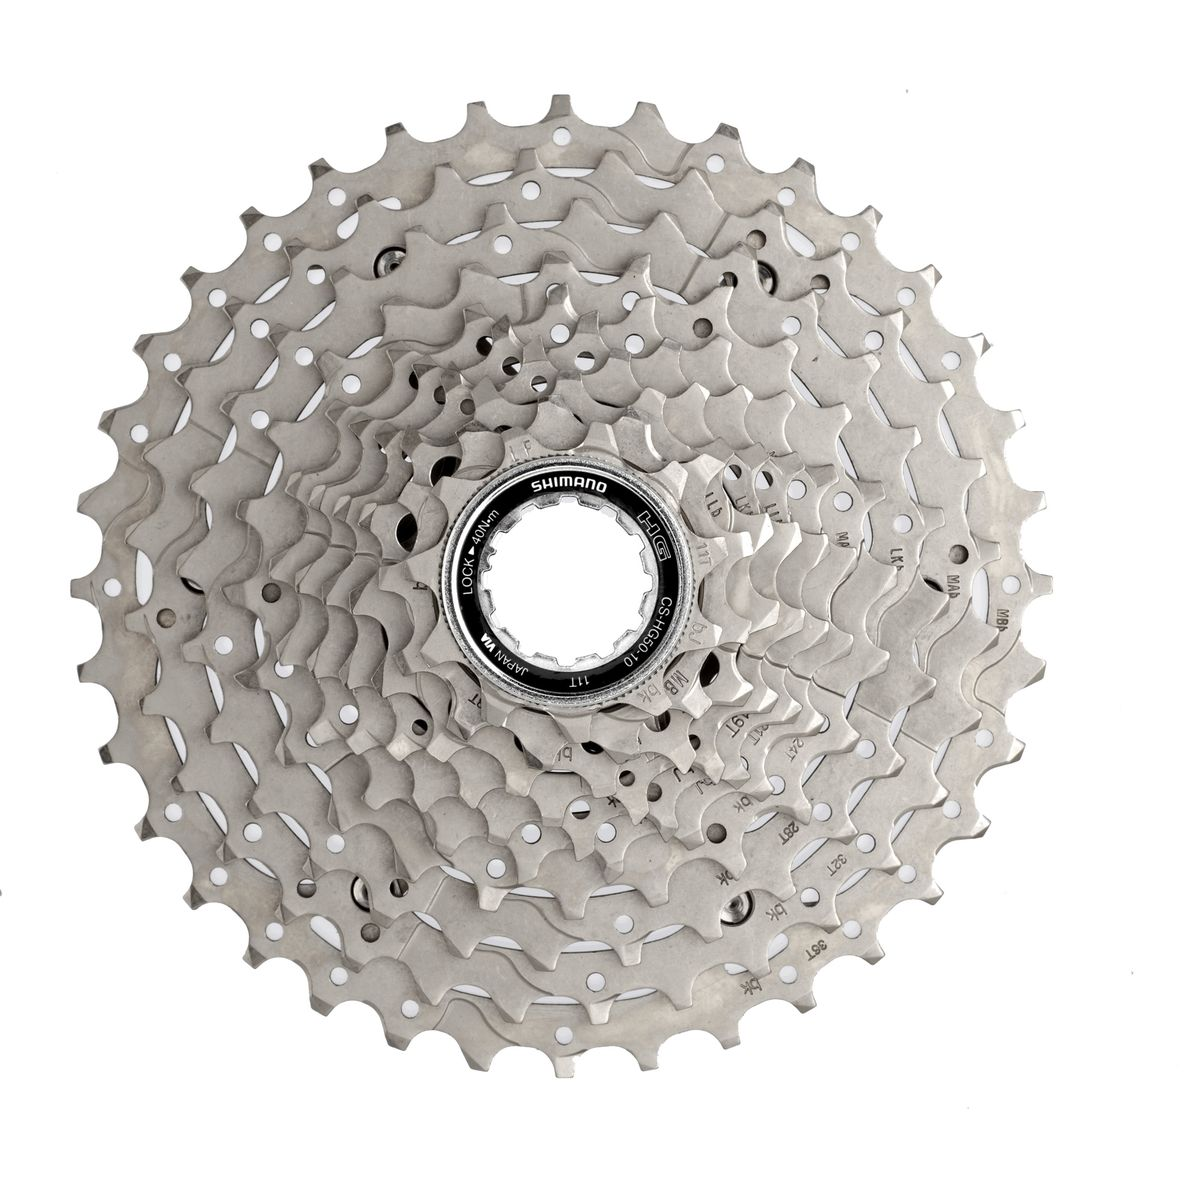 CS-HG50-10 10-speed cassette